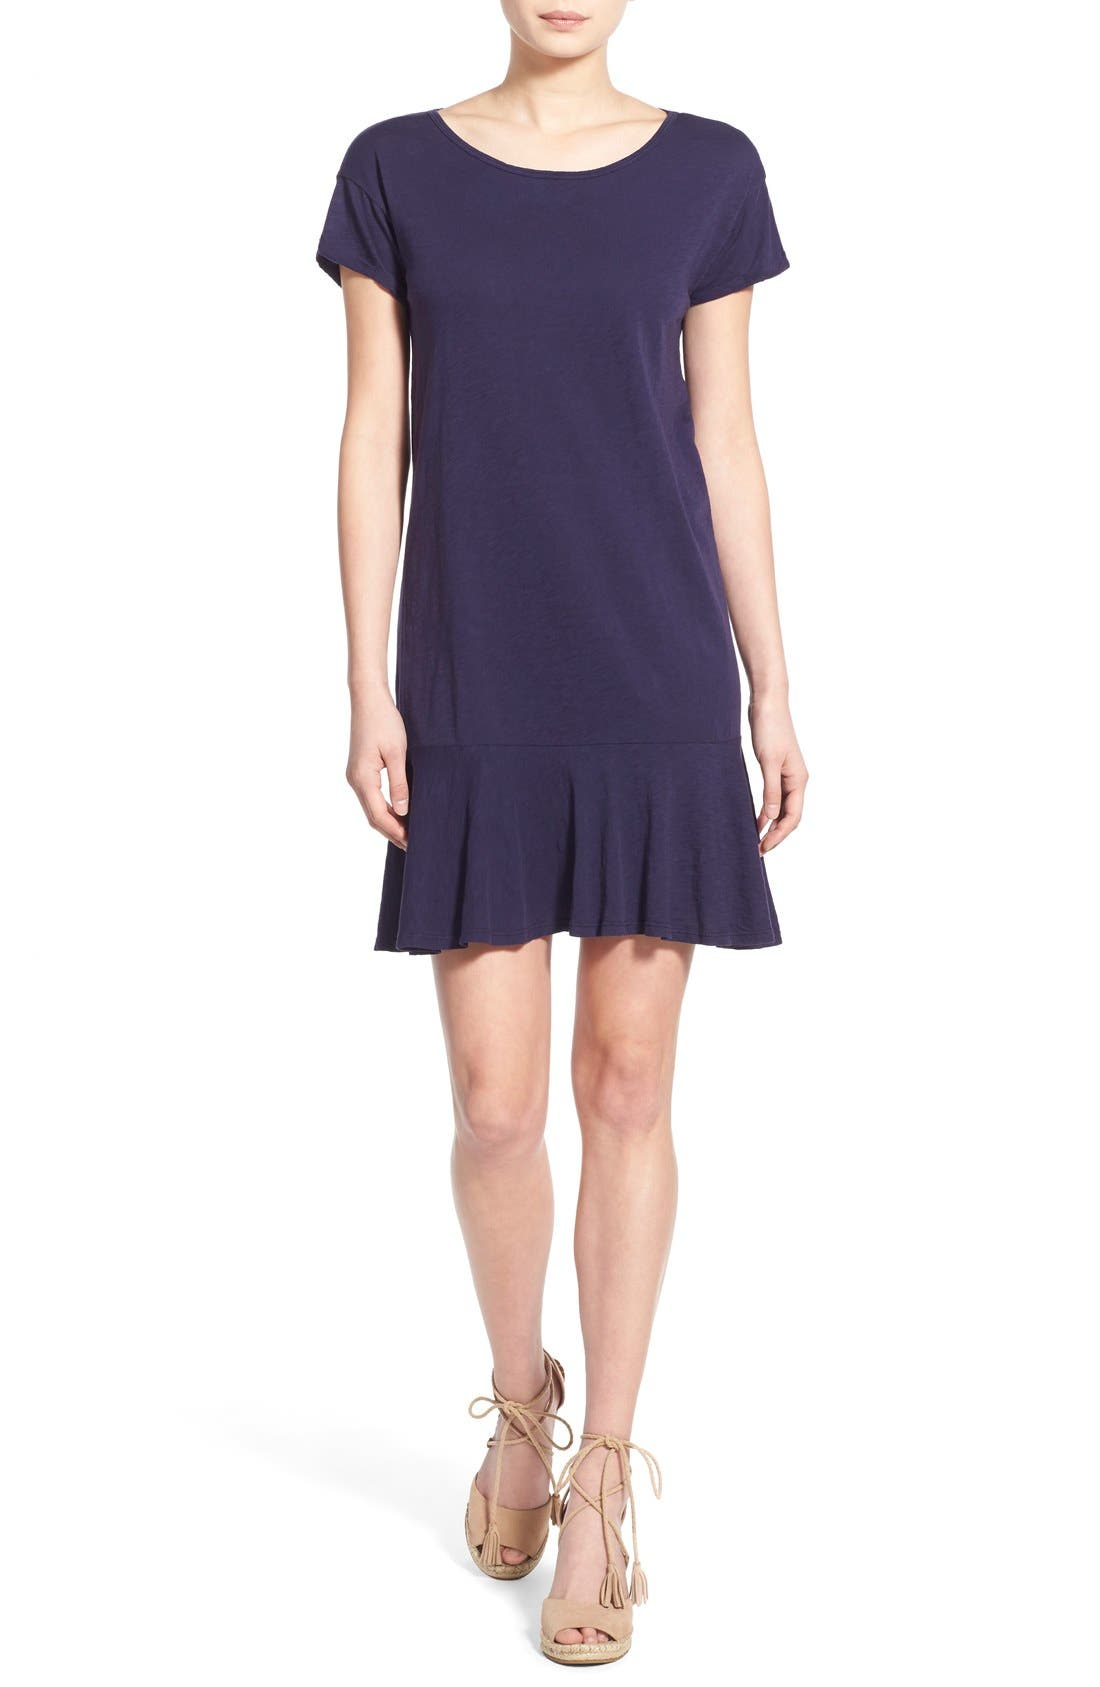 Main Image - Velvet by Graham & Spencer Ruffle Hem Cotton Tee Dress